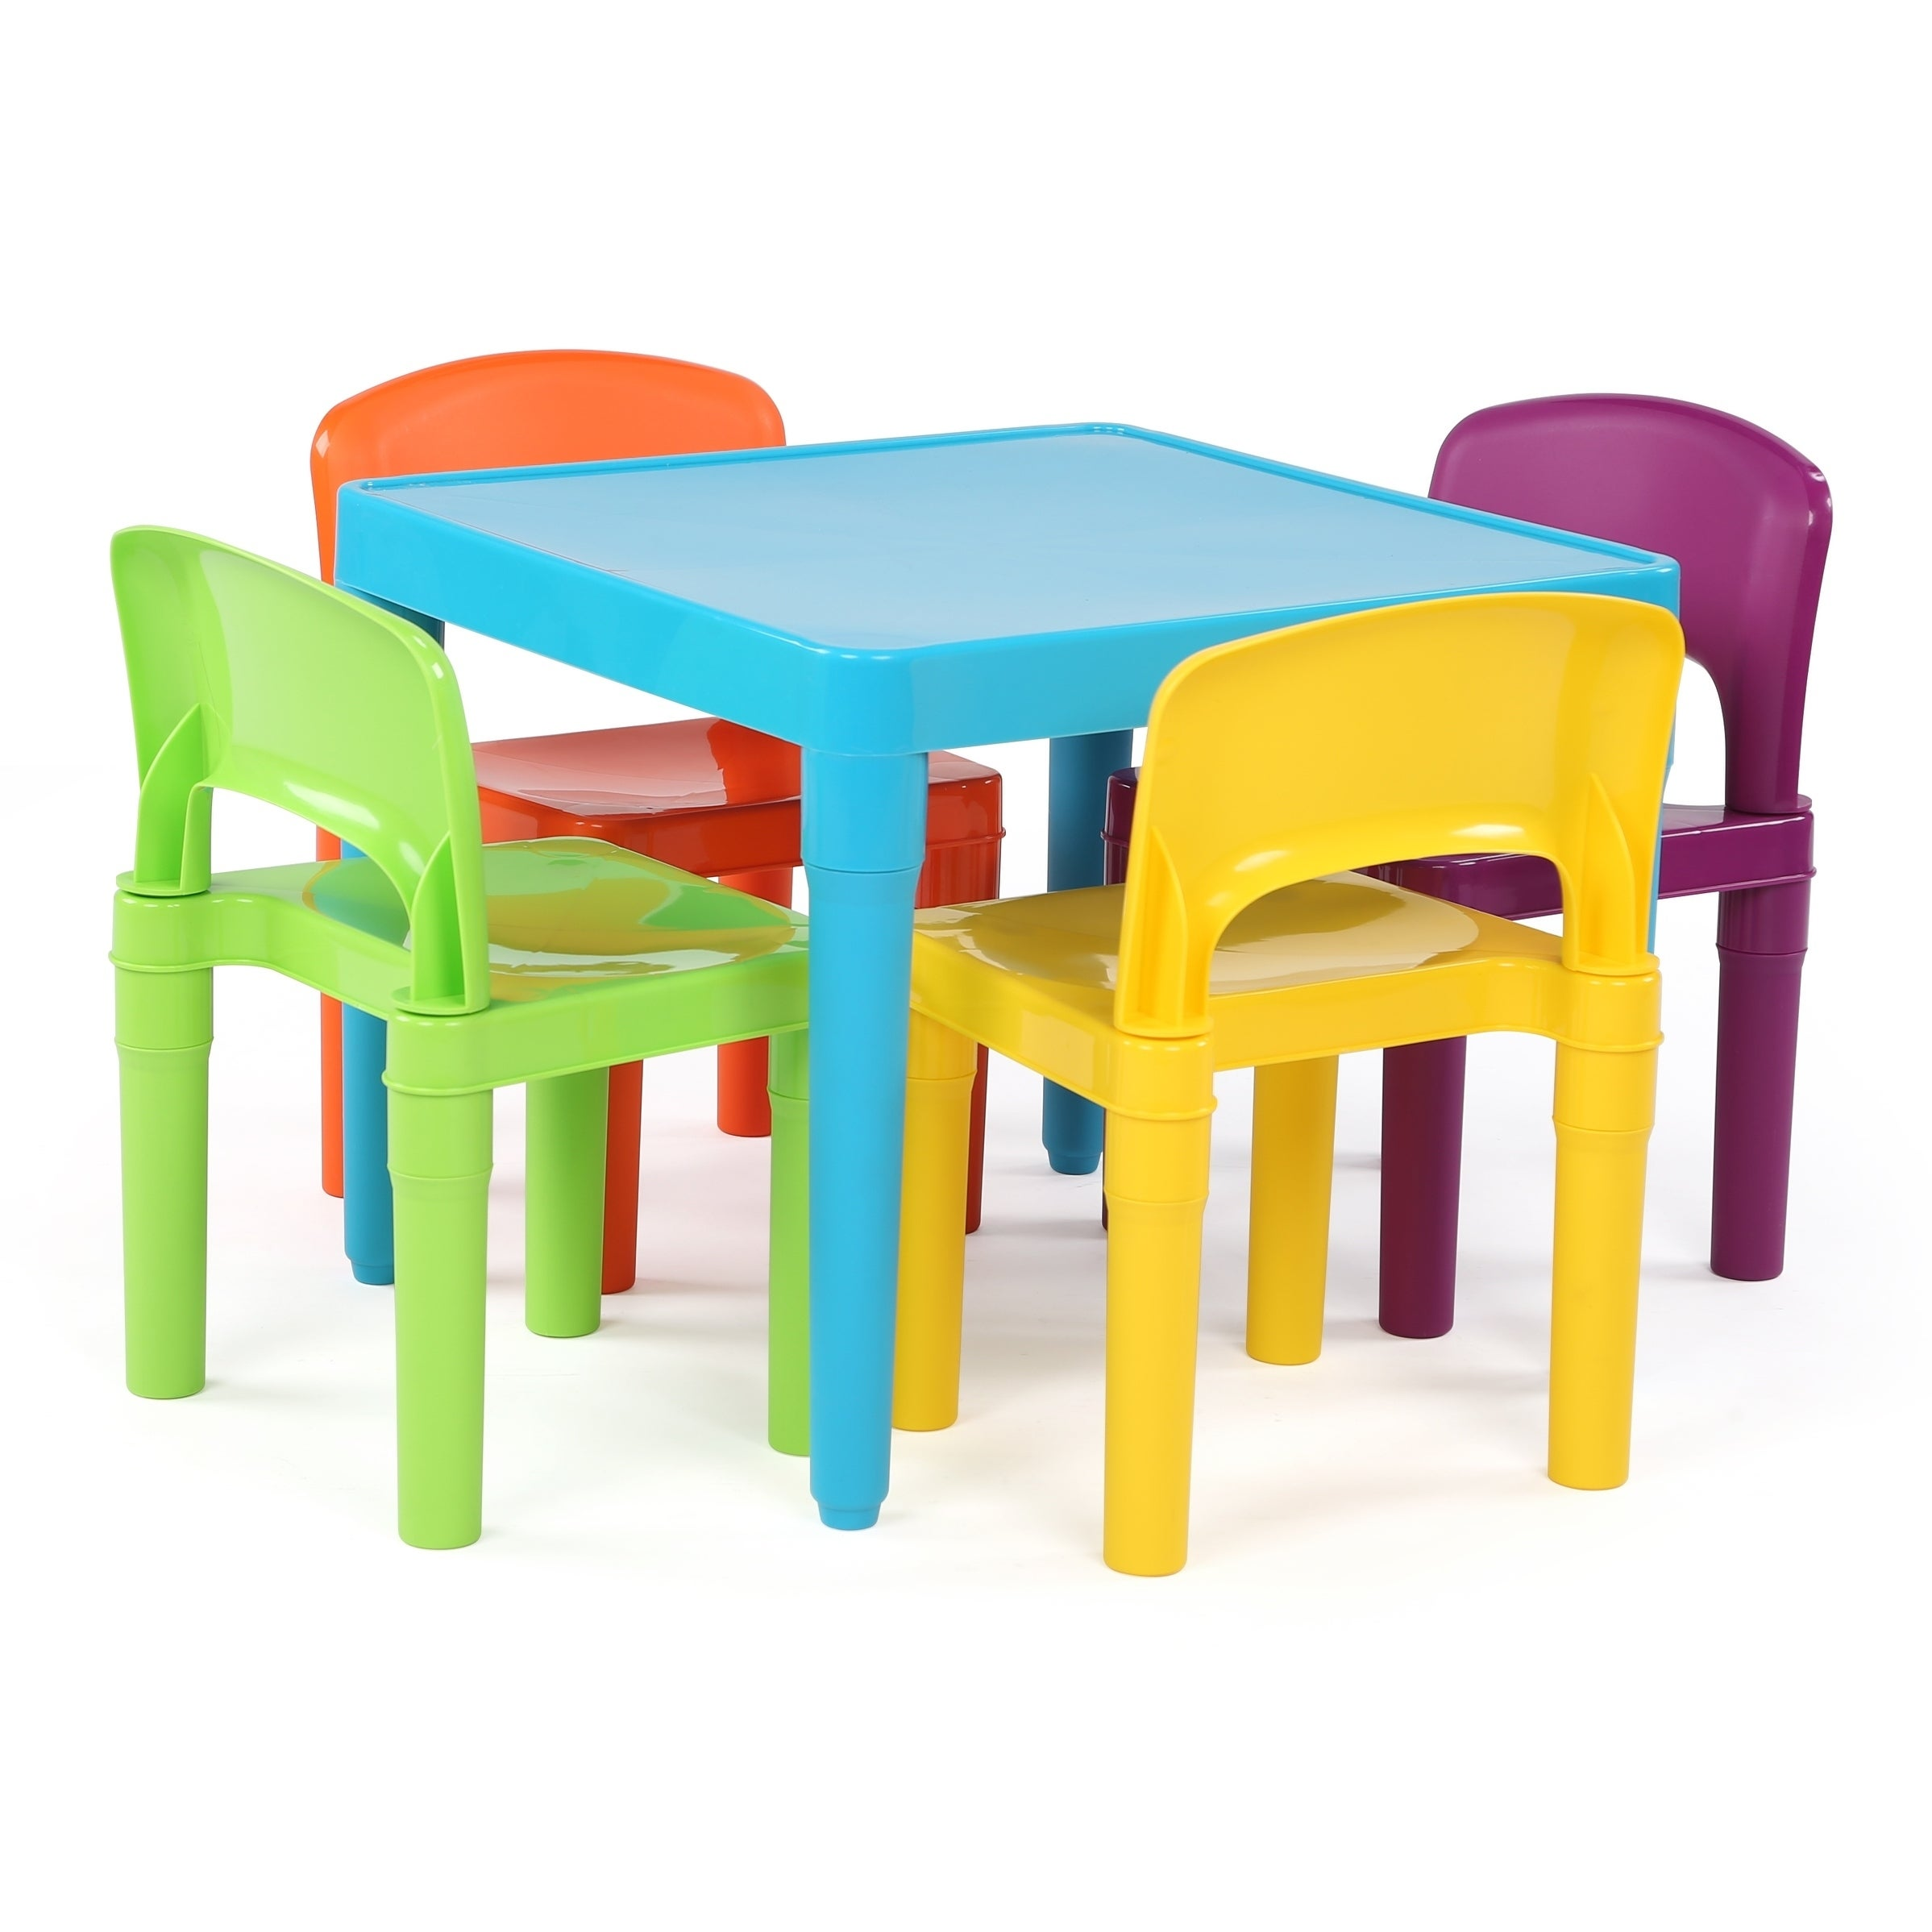 Playtime Collection Kids Plastic Table and 4 Chairs, Aqua...